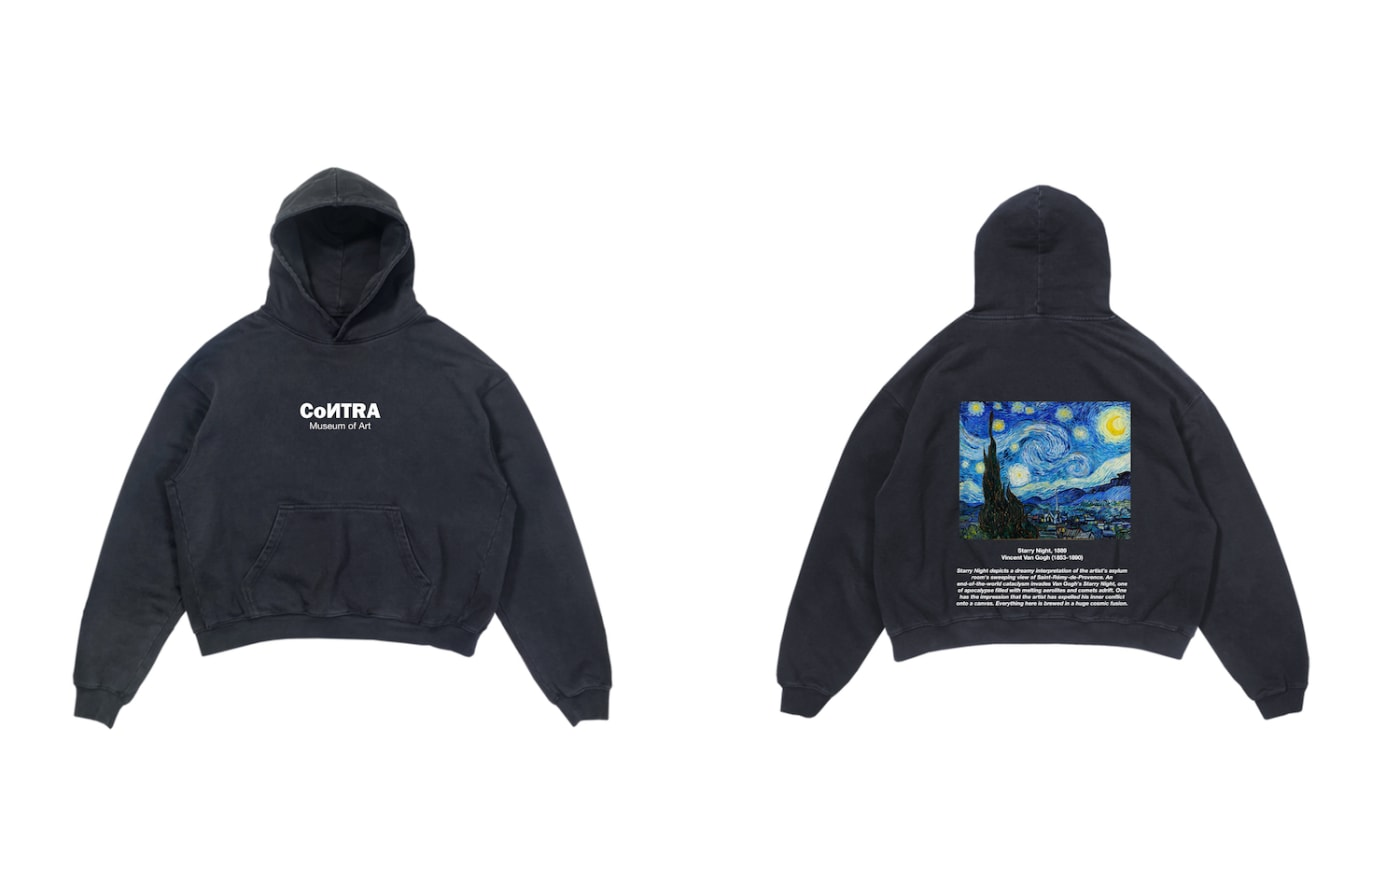 Contra MoMa Hoodie